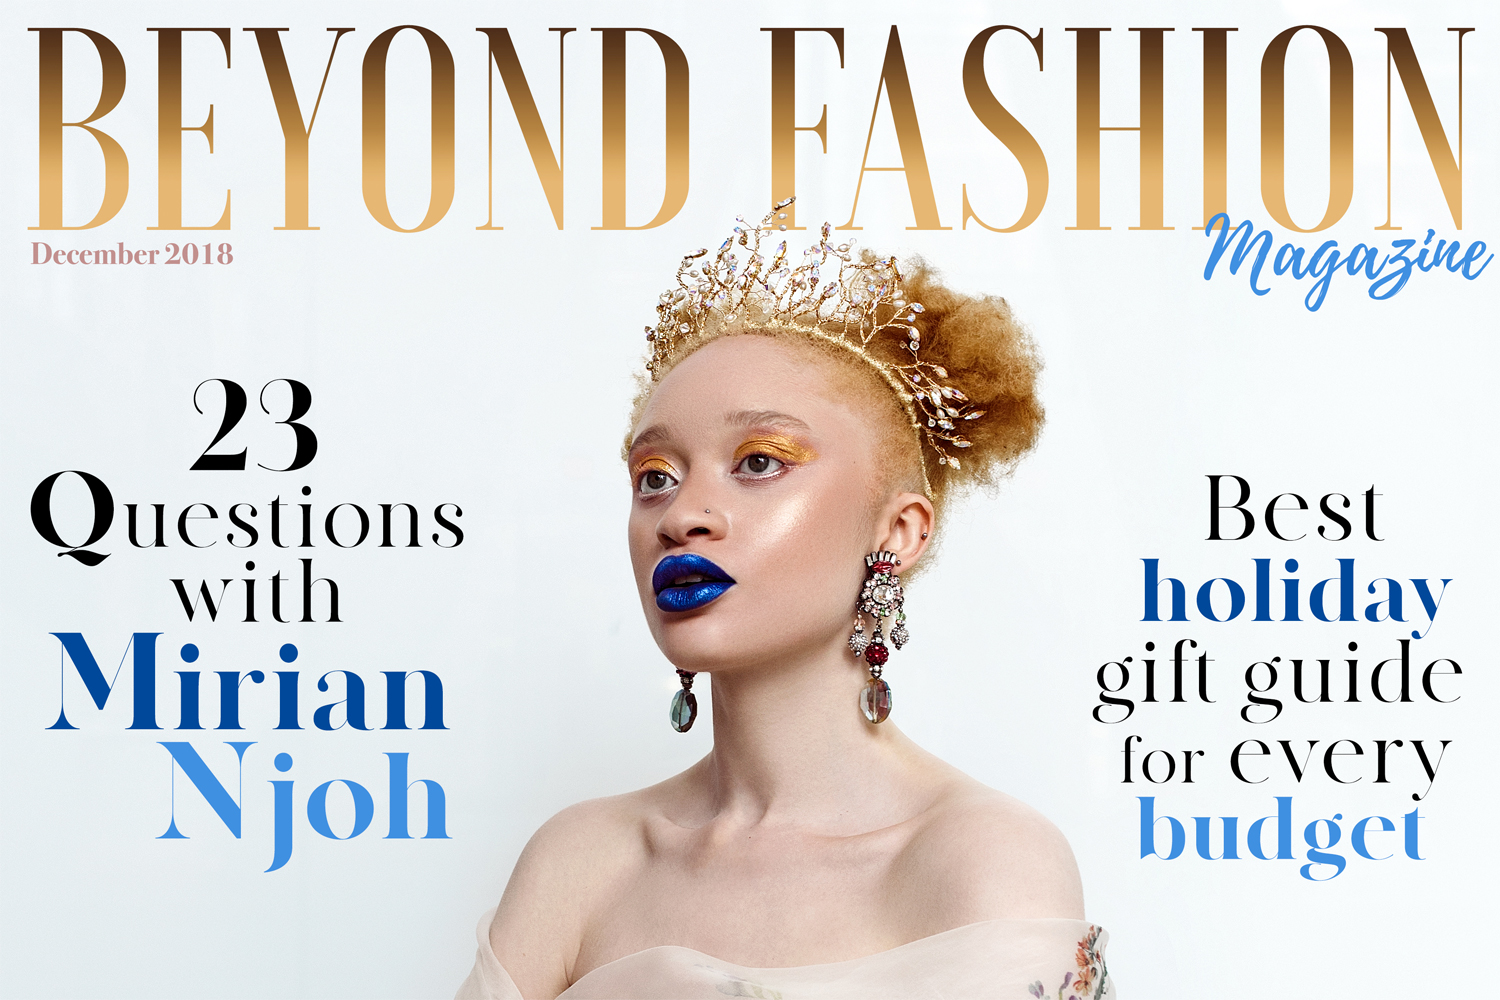 I'm Beyond Fashion Magazine's December 2018 Cover Star